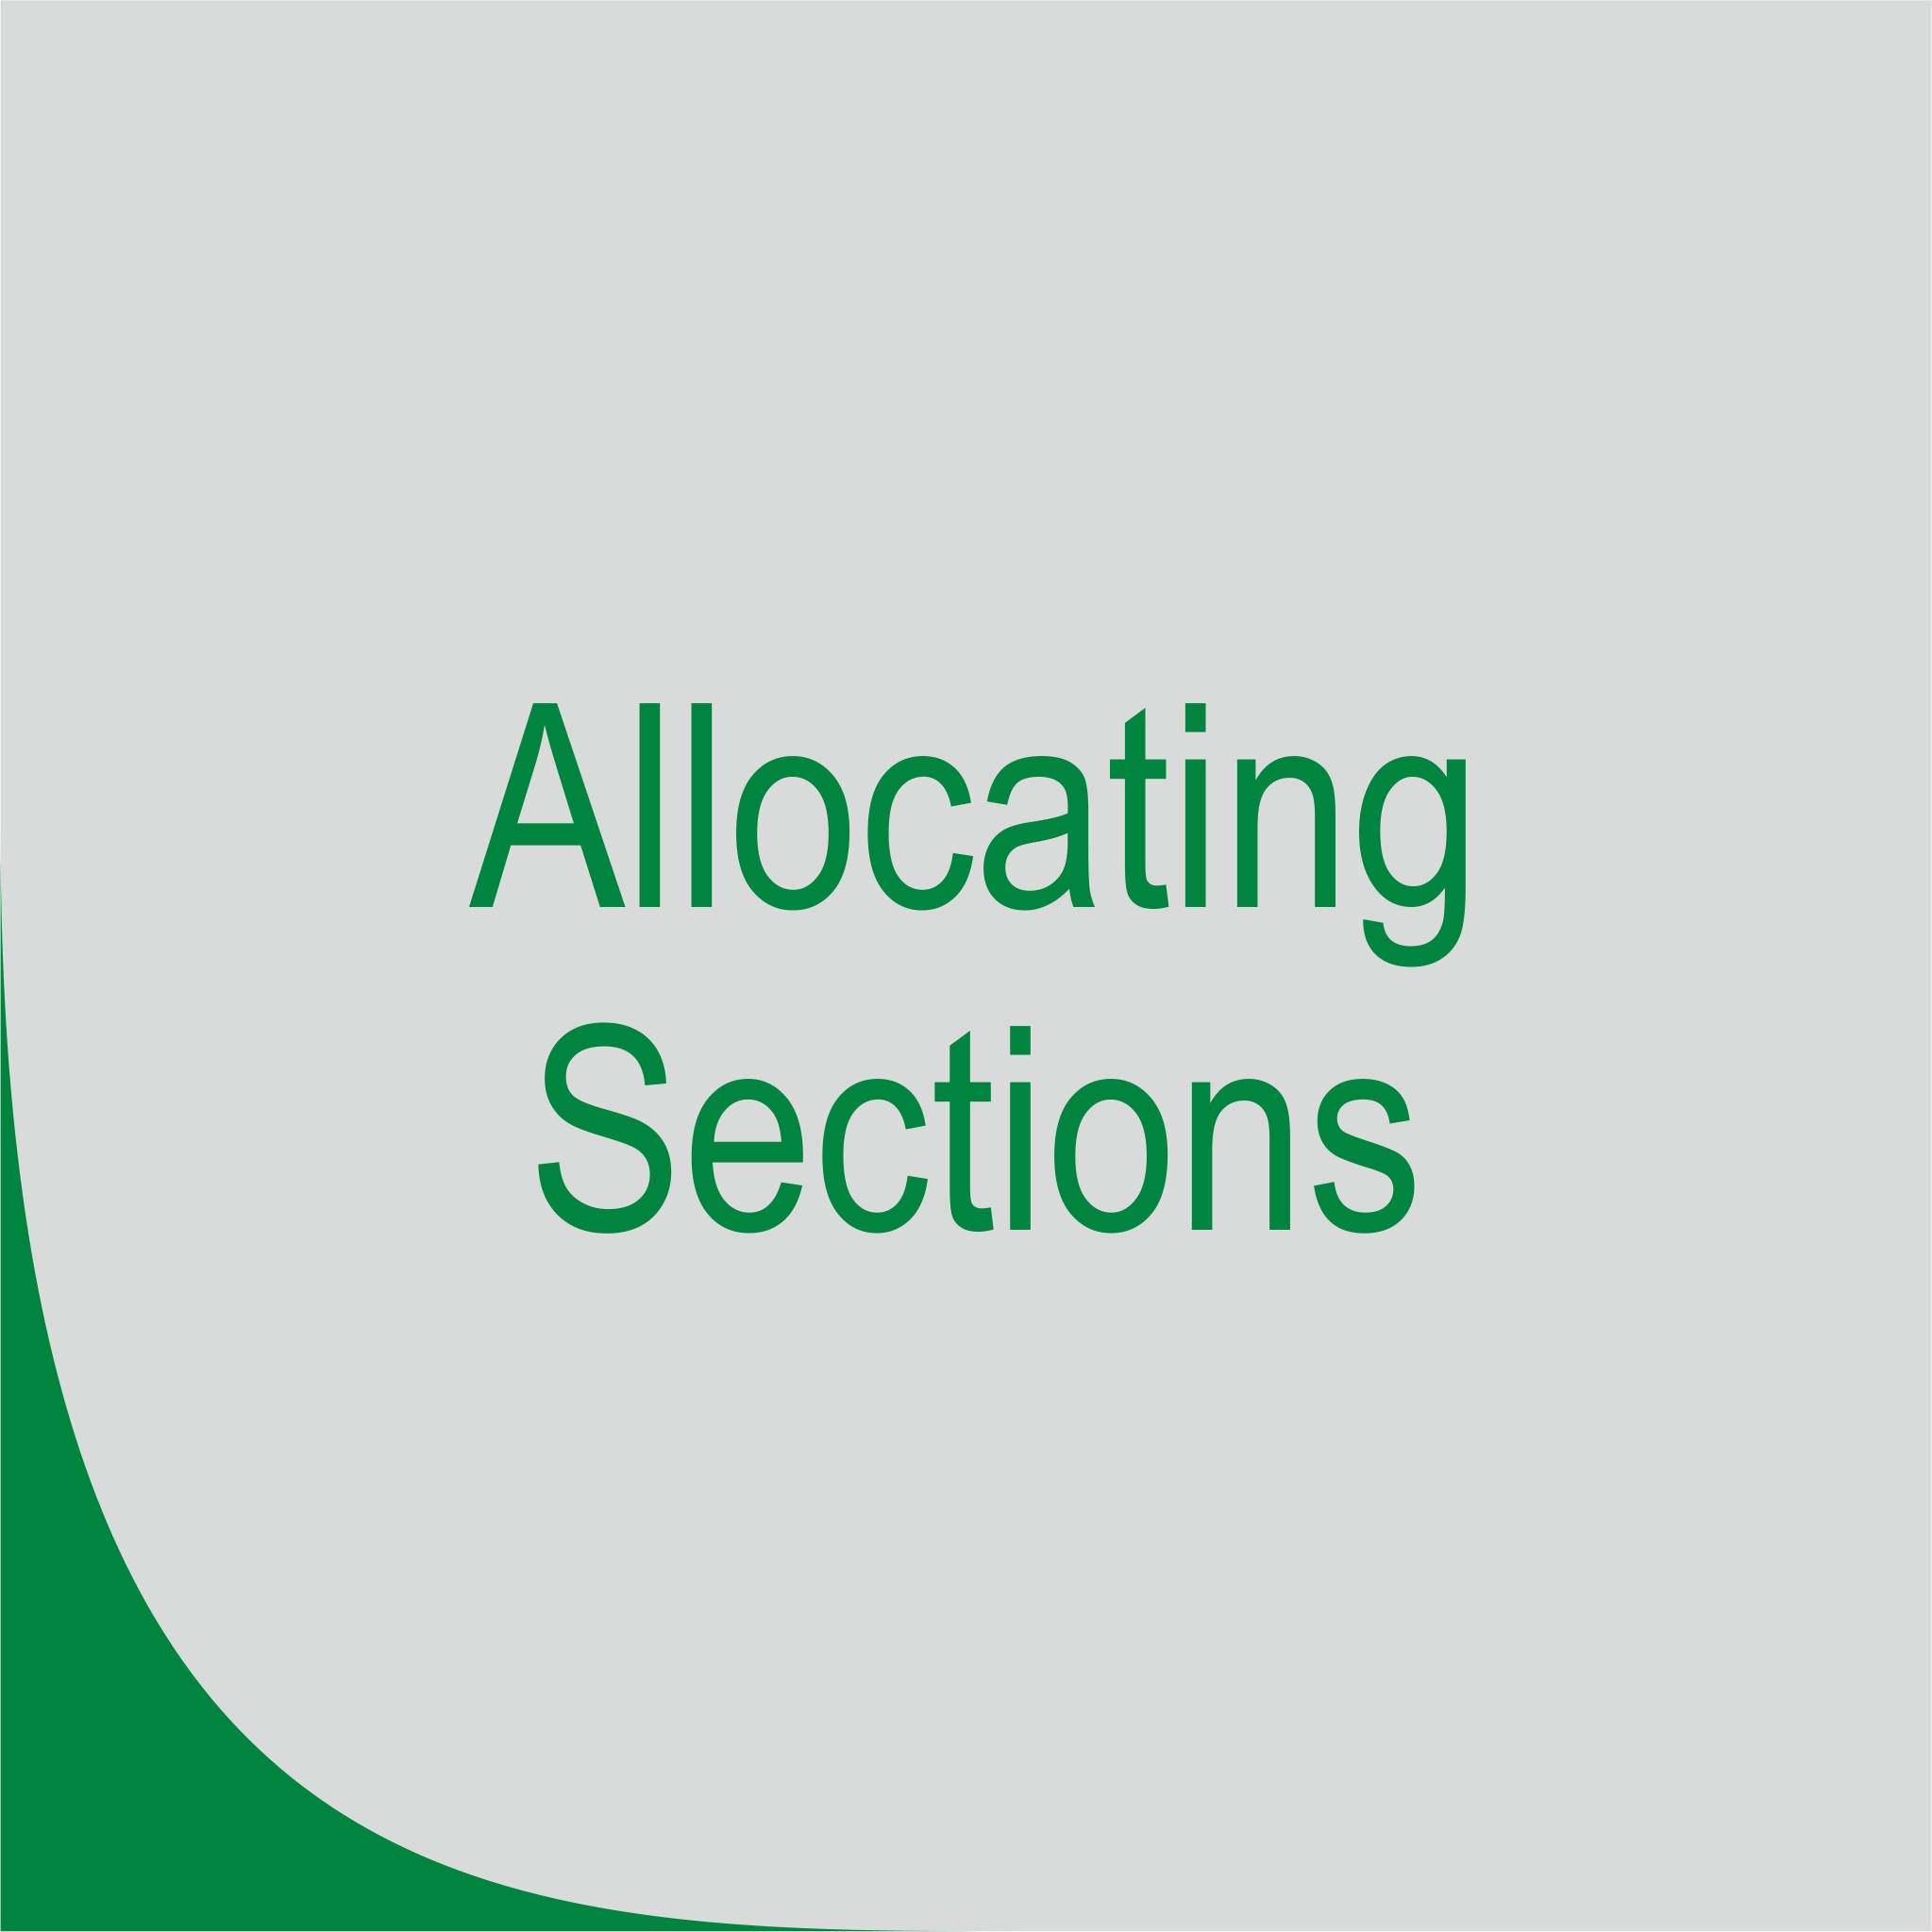 Allocating Section Planogram (POG)